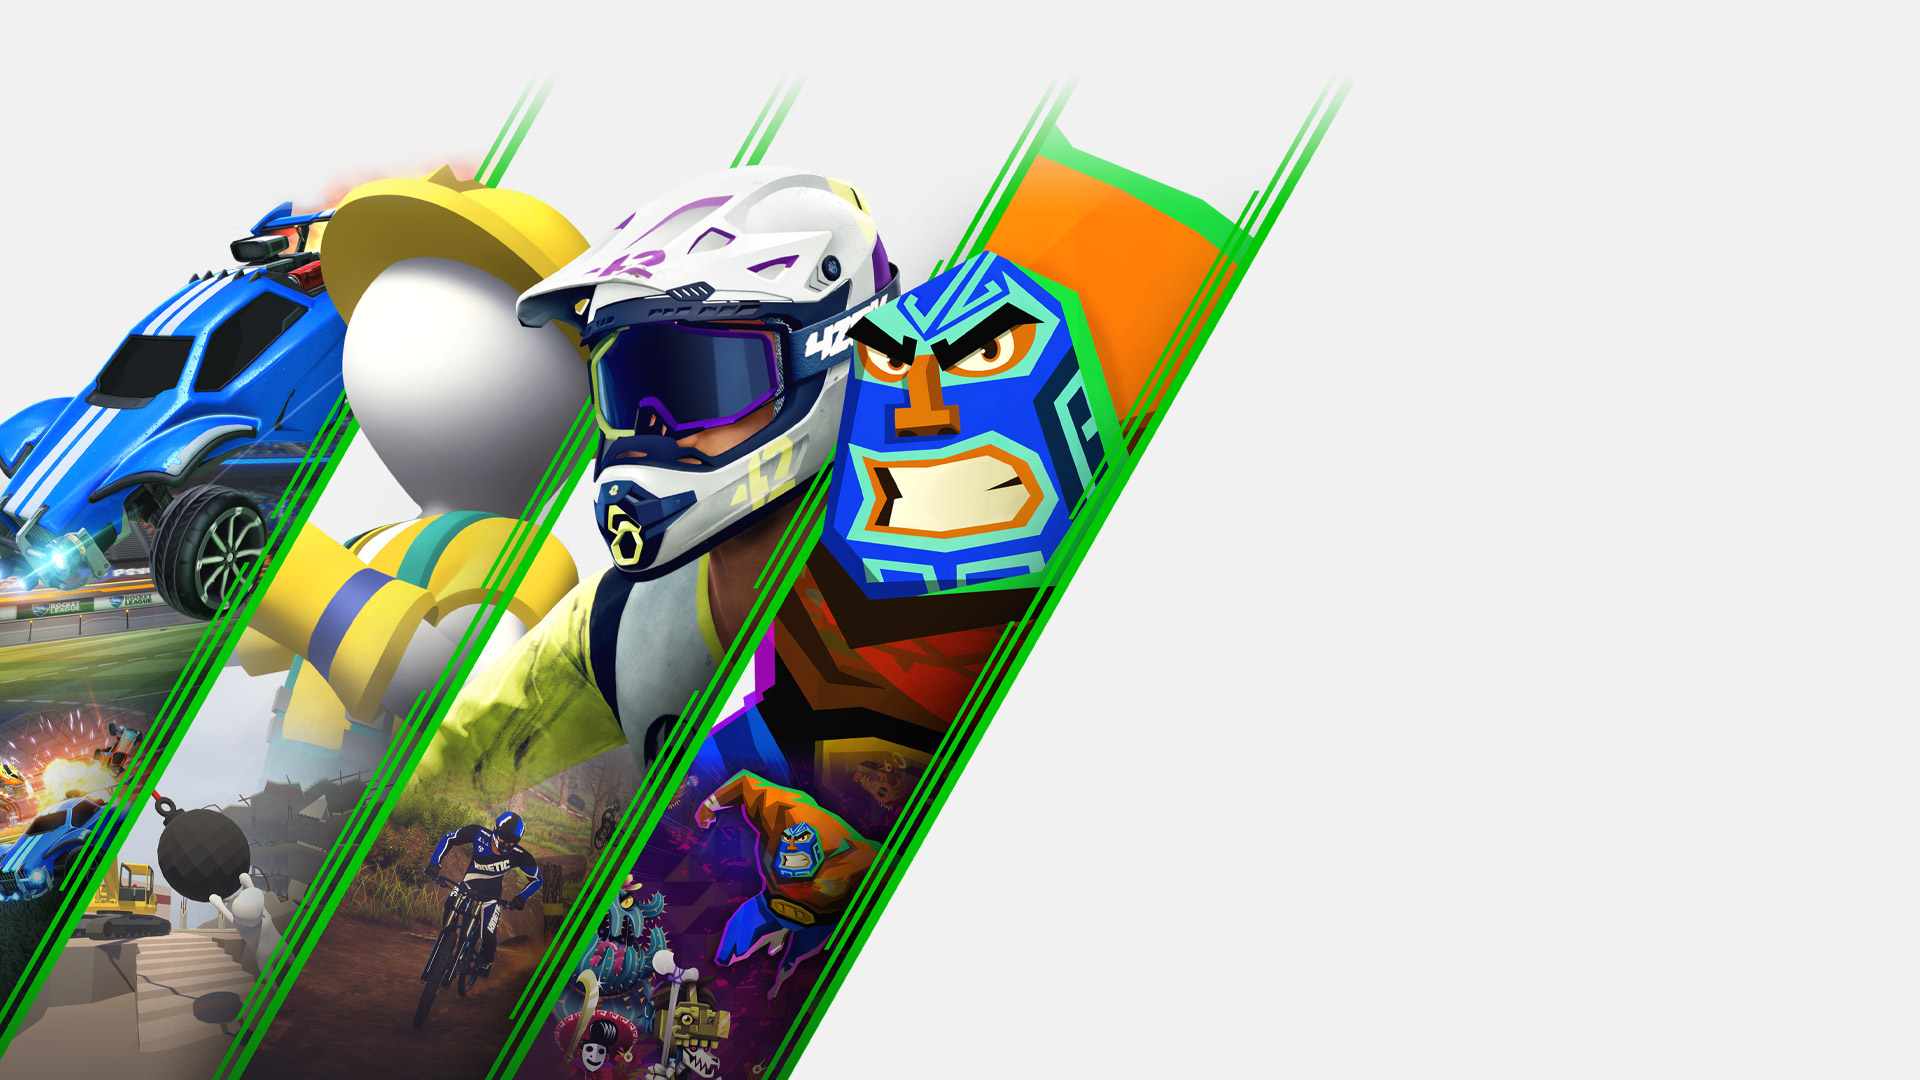 Collage van personages uit Rocket League, Human Fall Flat, Descenders en Guacamelee 2